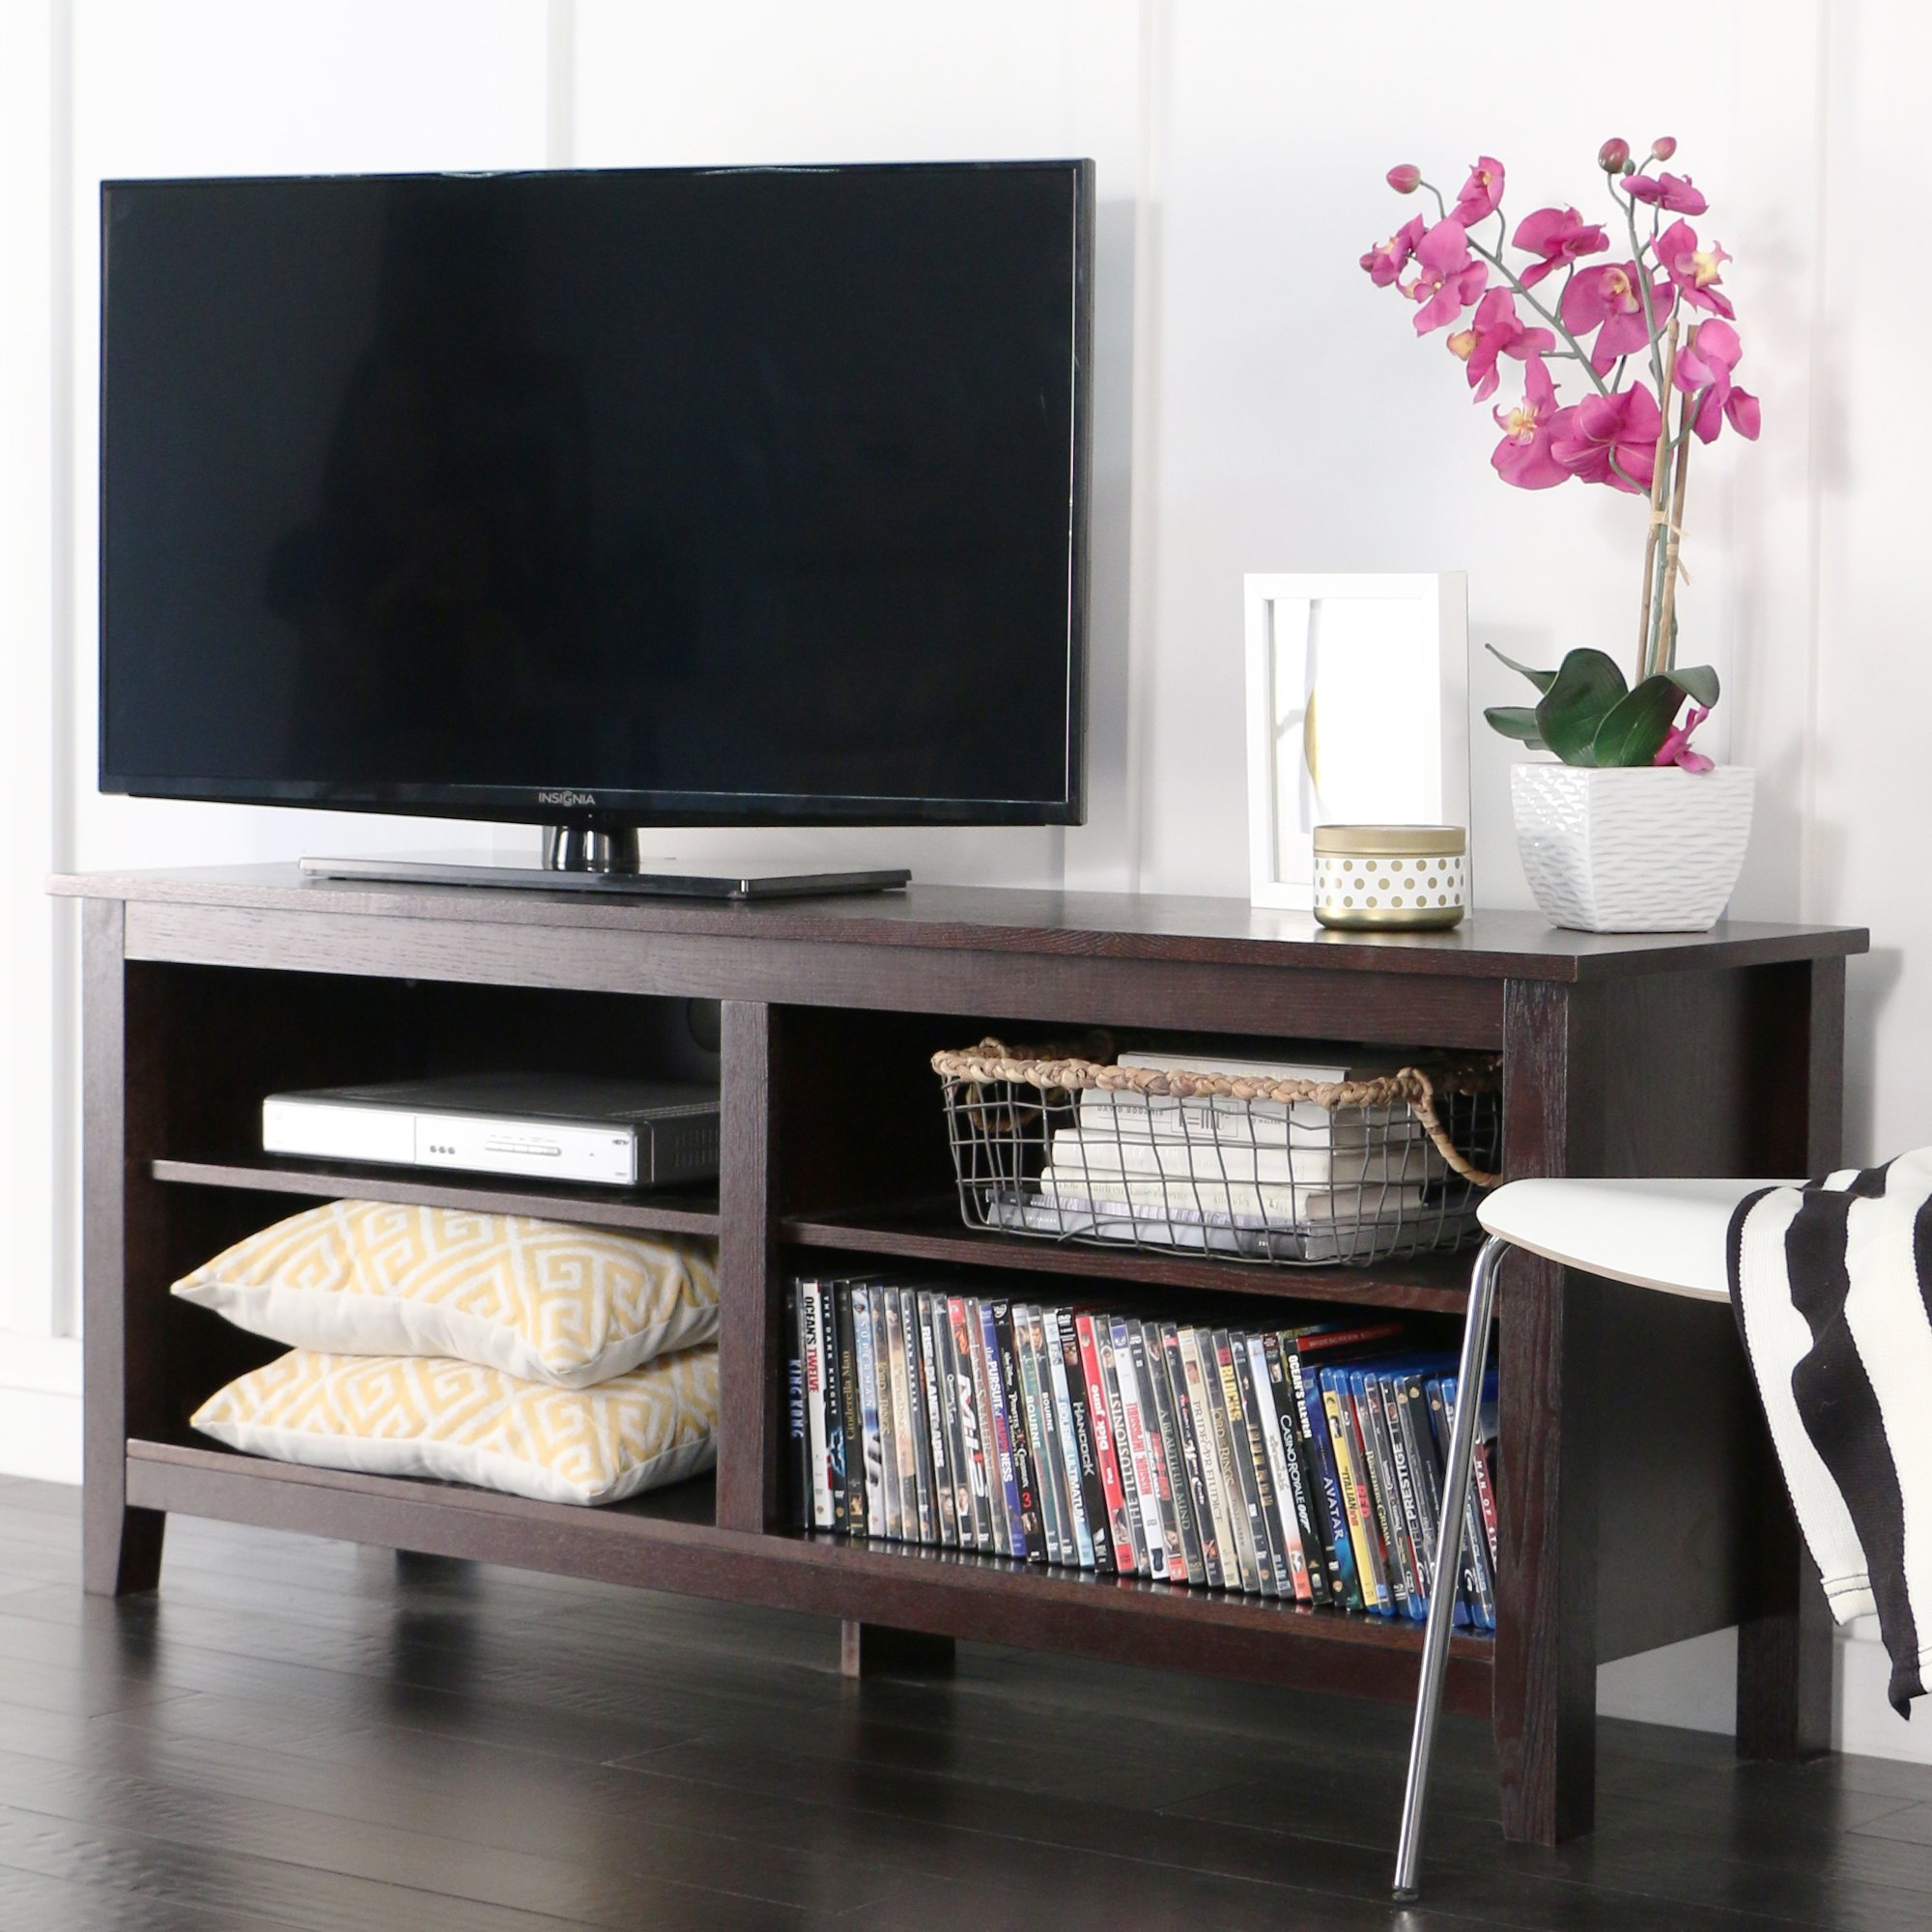 WE Furniture 58'' Wood TV Stand Storage Console, Espresso by WE Furniture (Image #1)